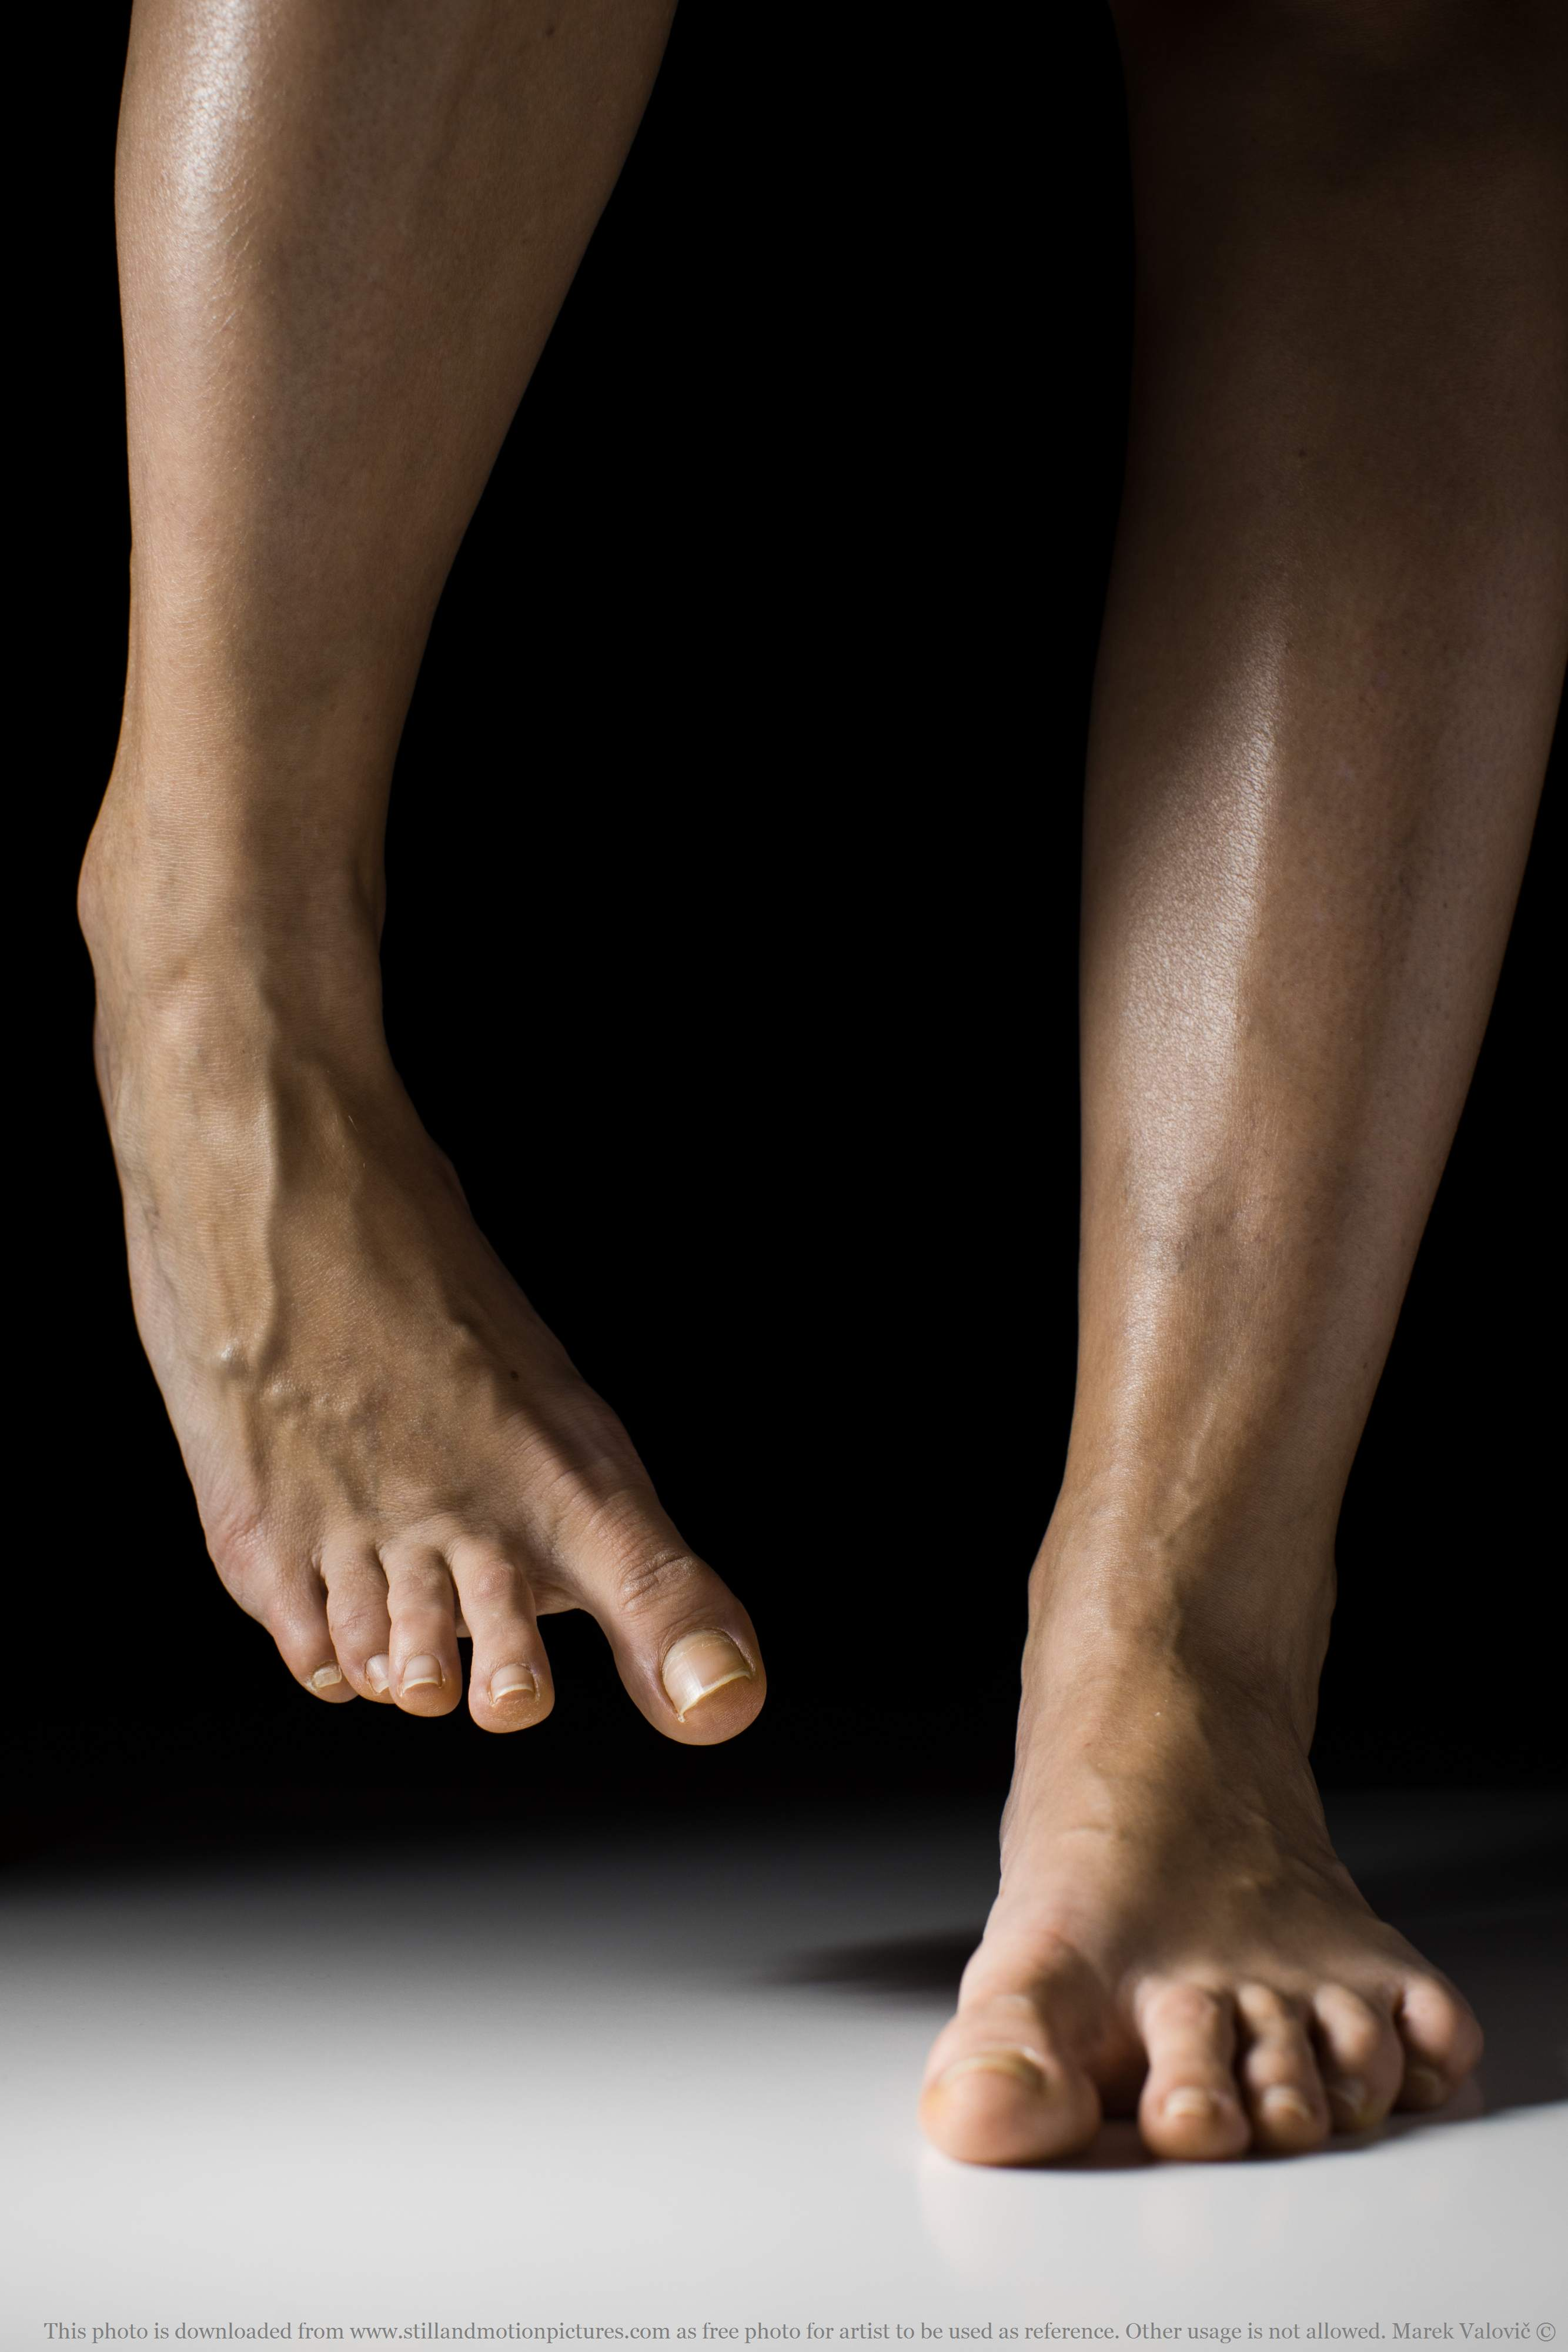 feet anatomy - woman's feet with veins visible - free referefce photo for artists